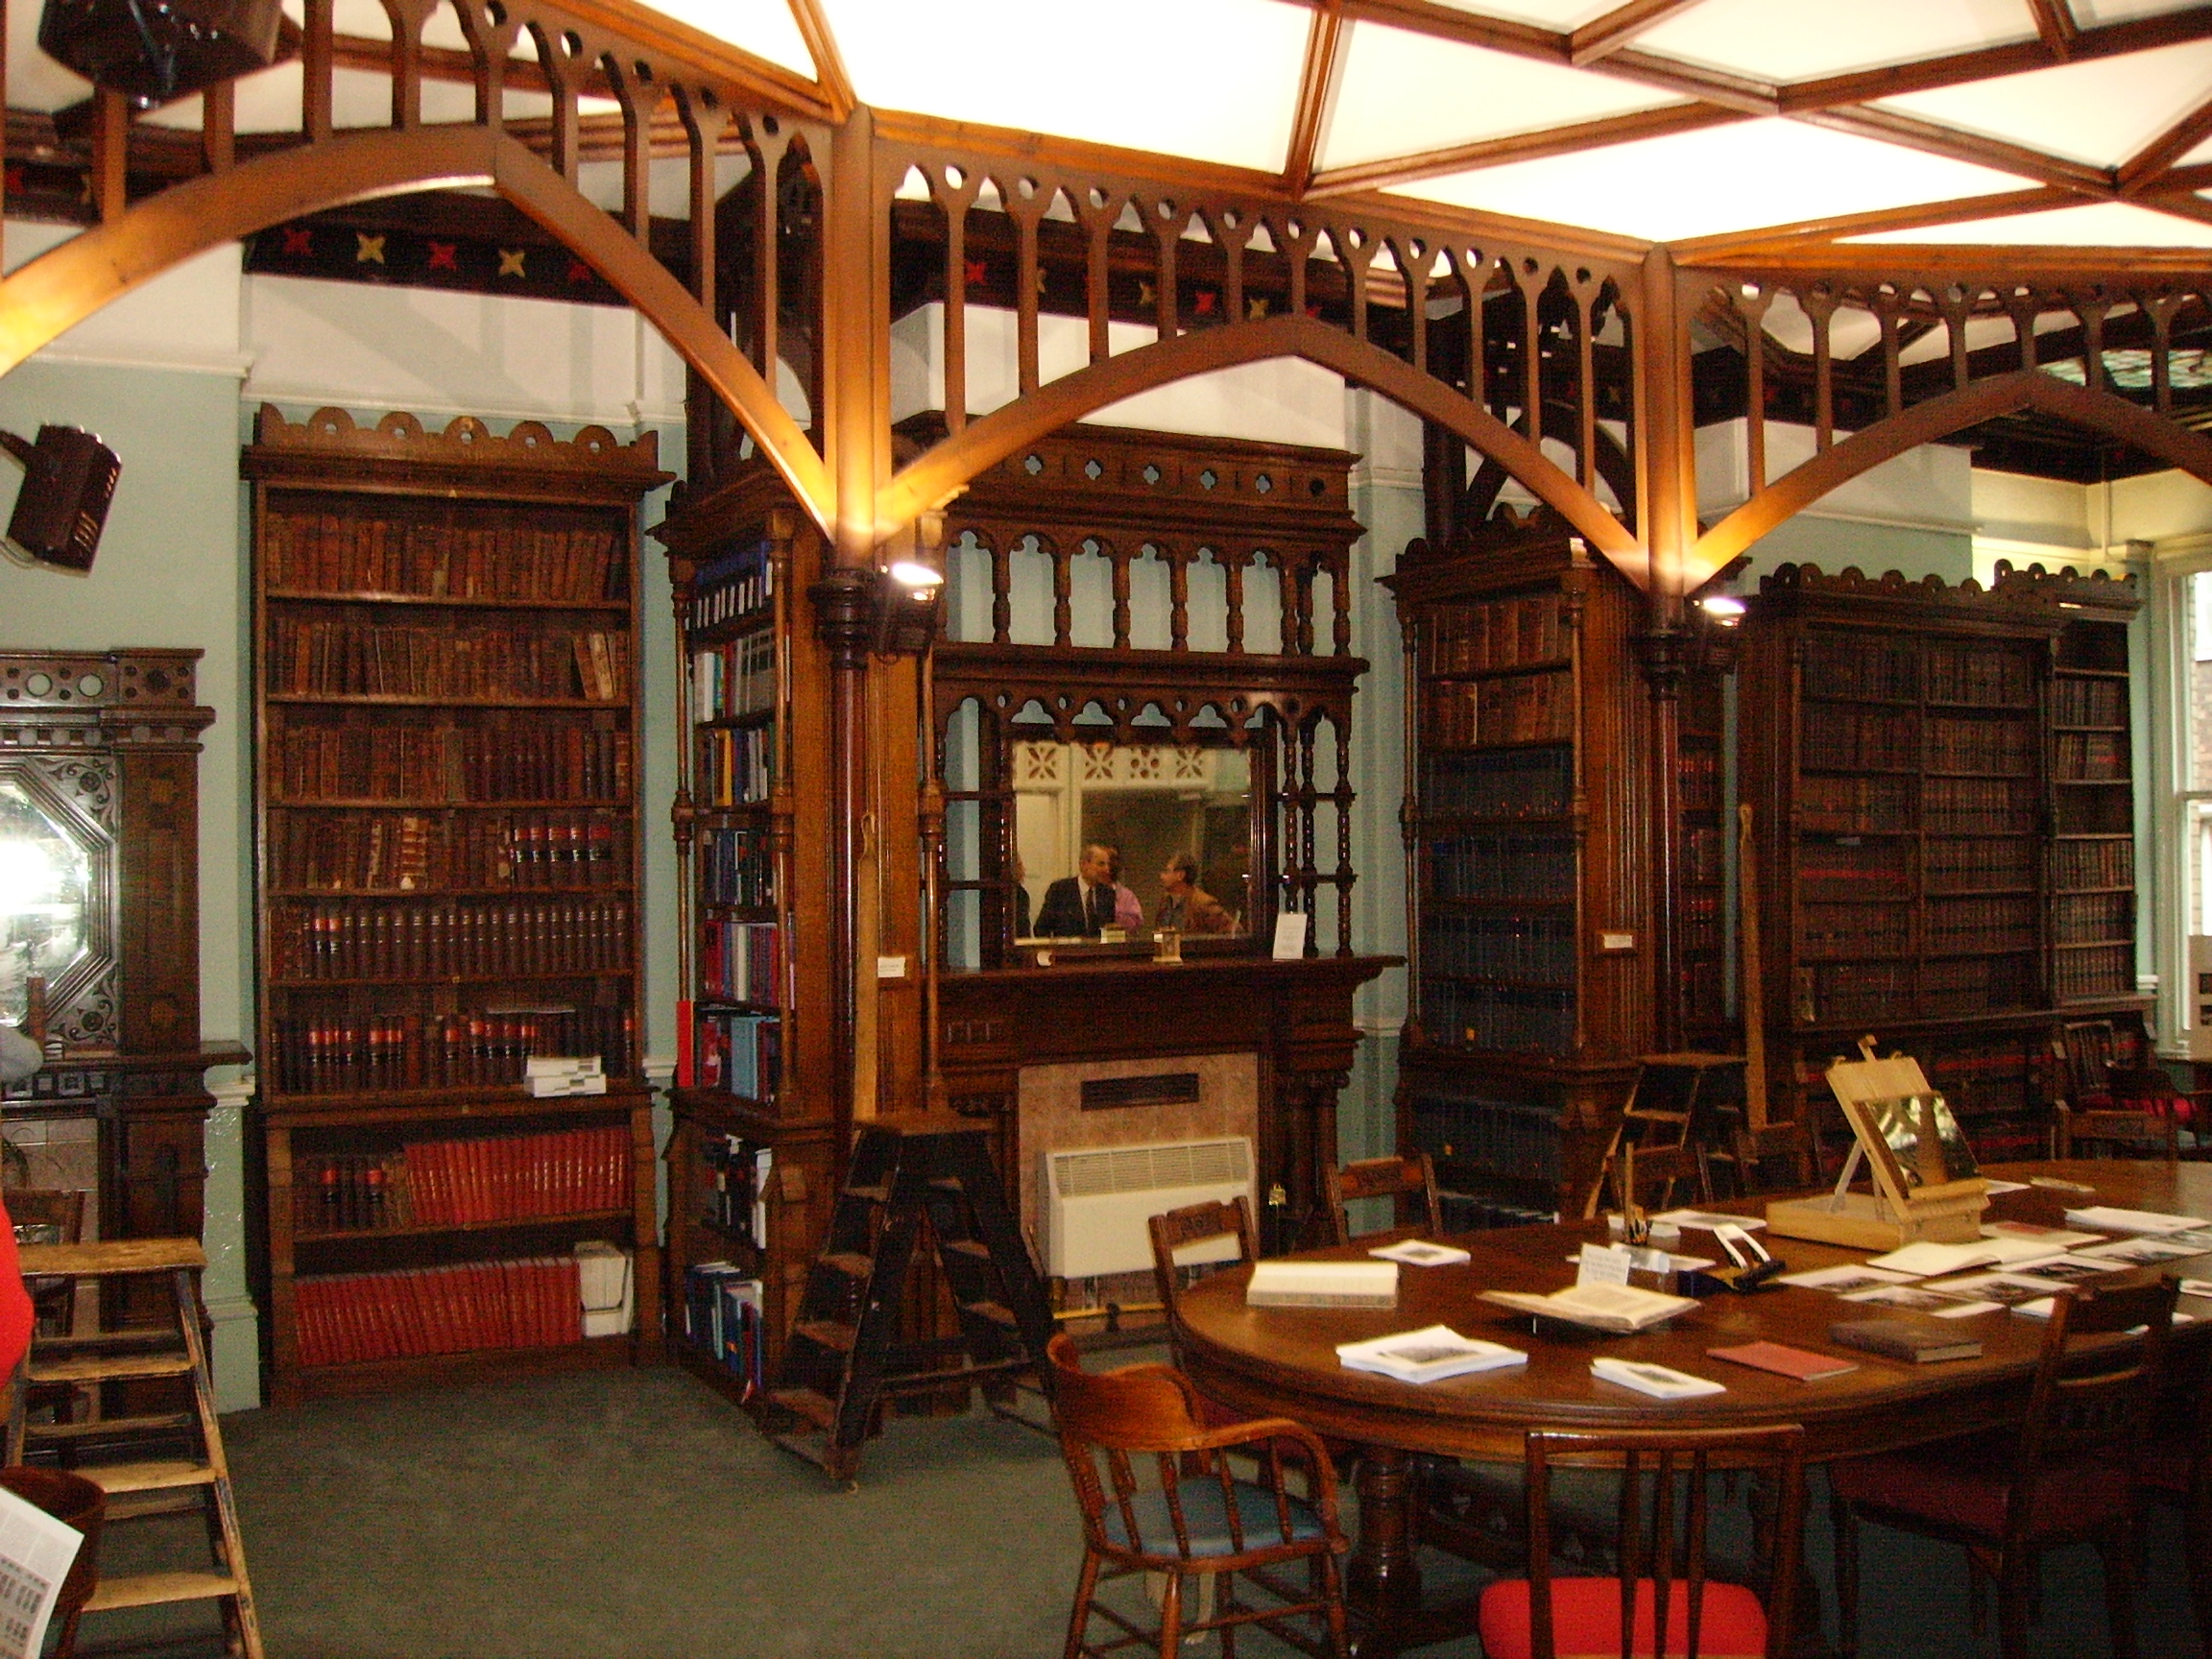 FileManchester Law Library 5JPG Wikimedia Commons